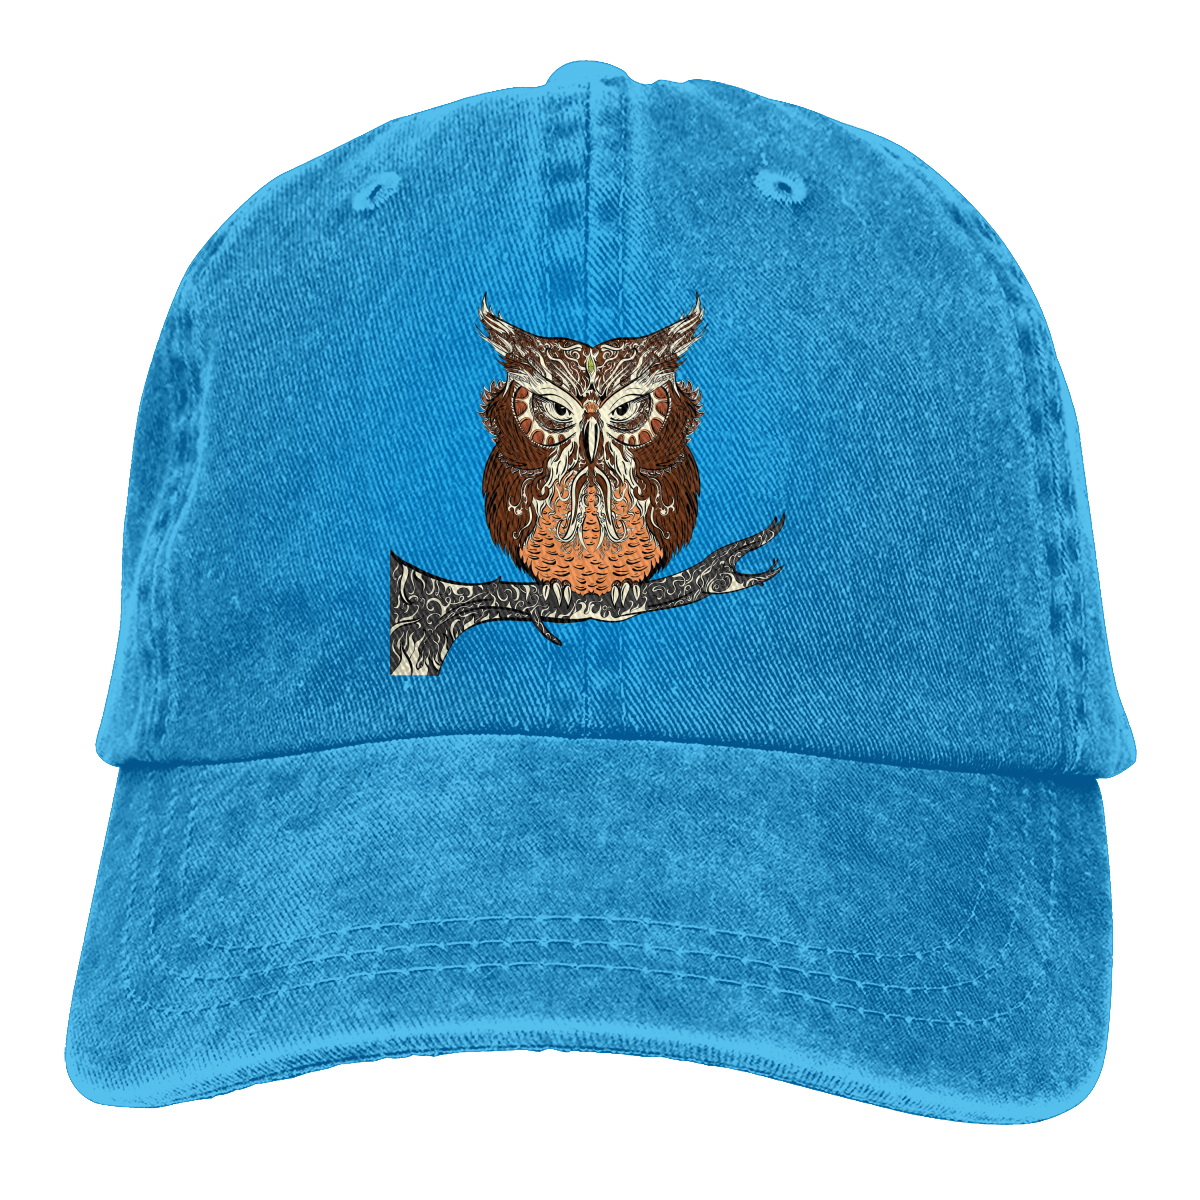 Adult Unisex Cowboy Cap Adjustable Hat Red Owl Eyes Cotton Denim